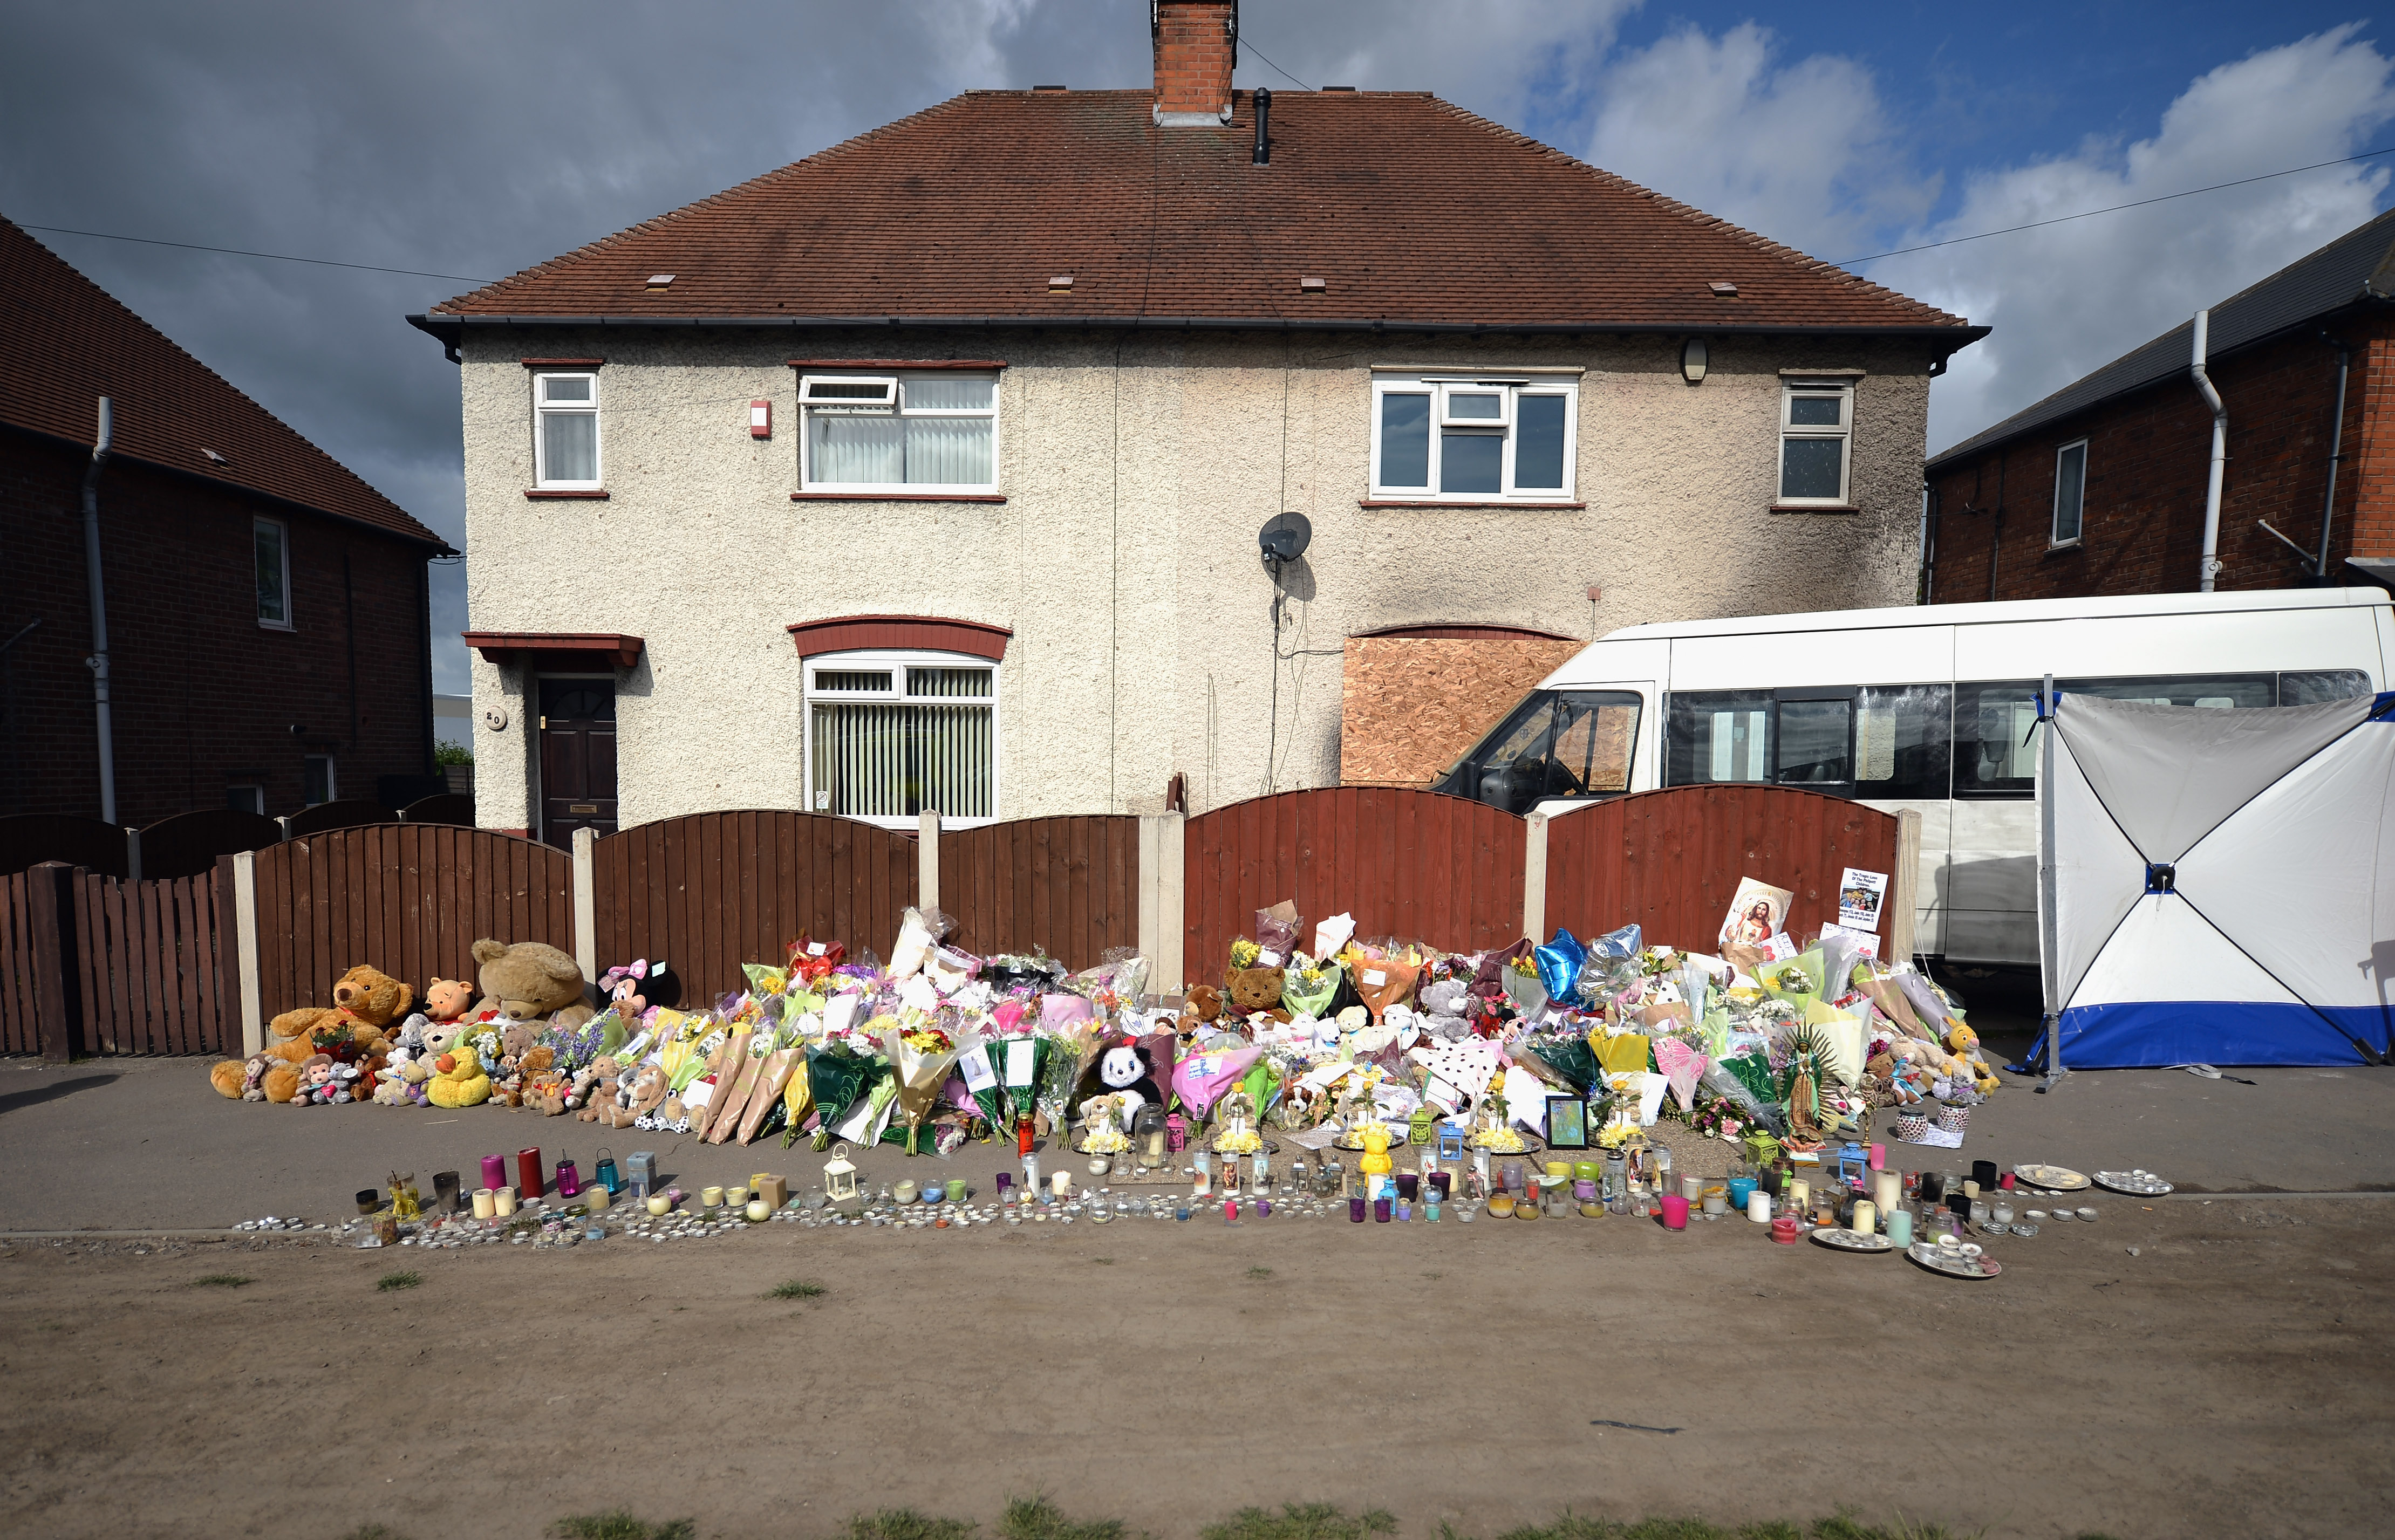 The family home with tributes for the children lining the pavement outside (Source: Christopher Furlong/Getty Images)